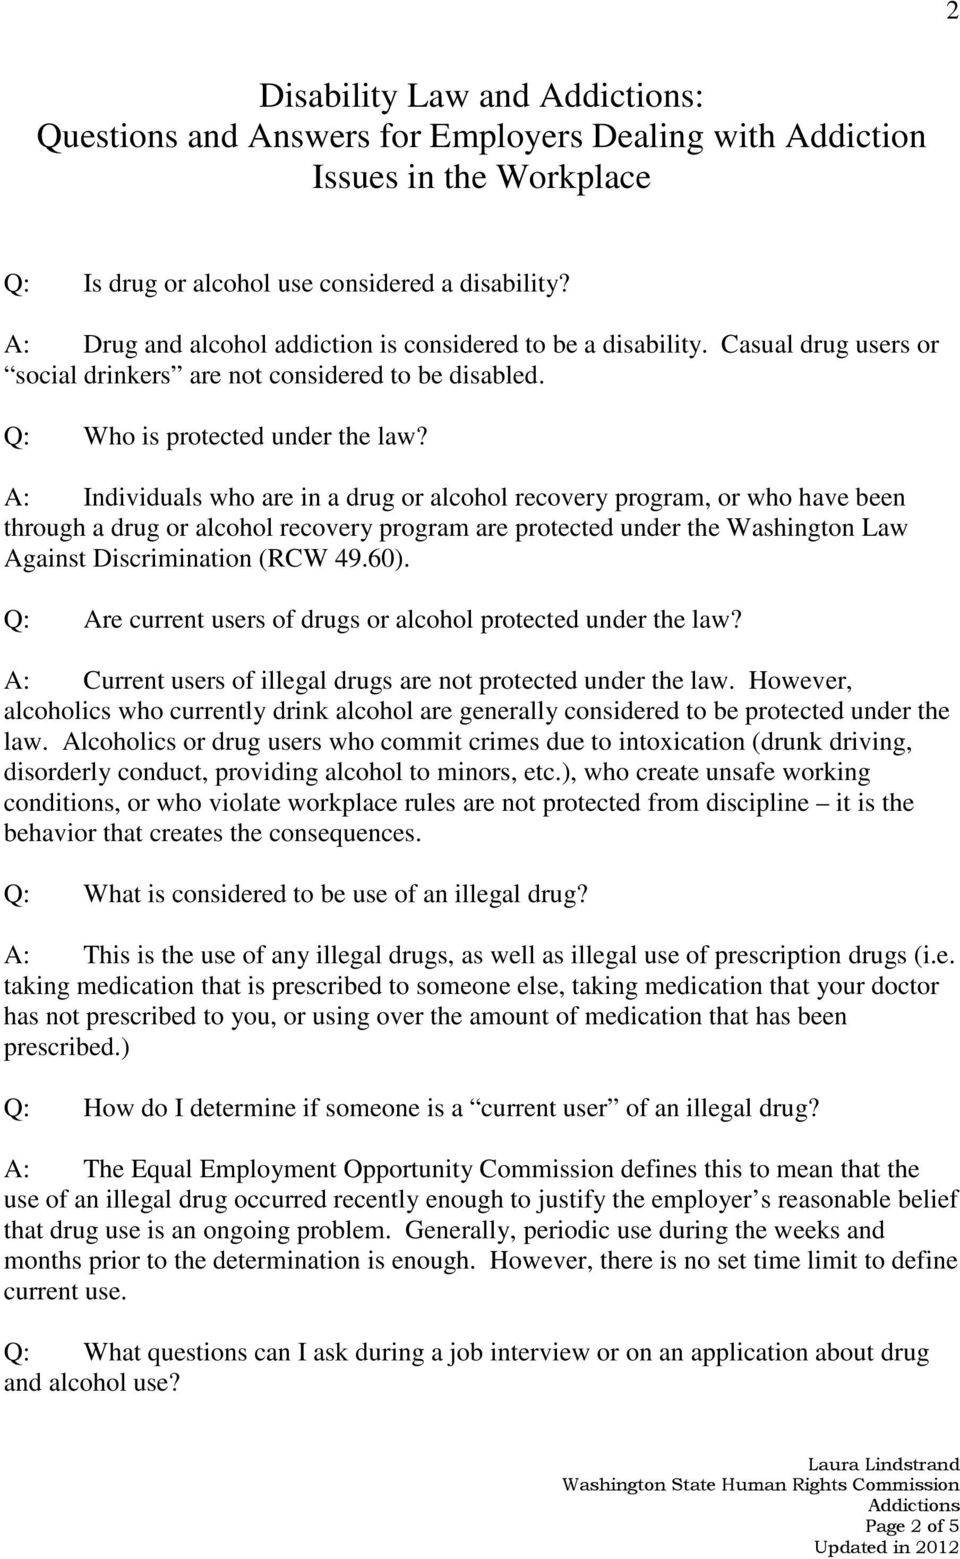 A: Individuals who are in a drug or alcohol recovery program, or who have been through a drug or alcohol recovery program are protected under the Washington Law Against Discrimination (RCW 49.60).